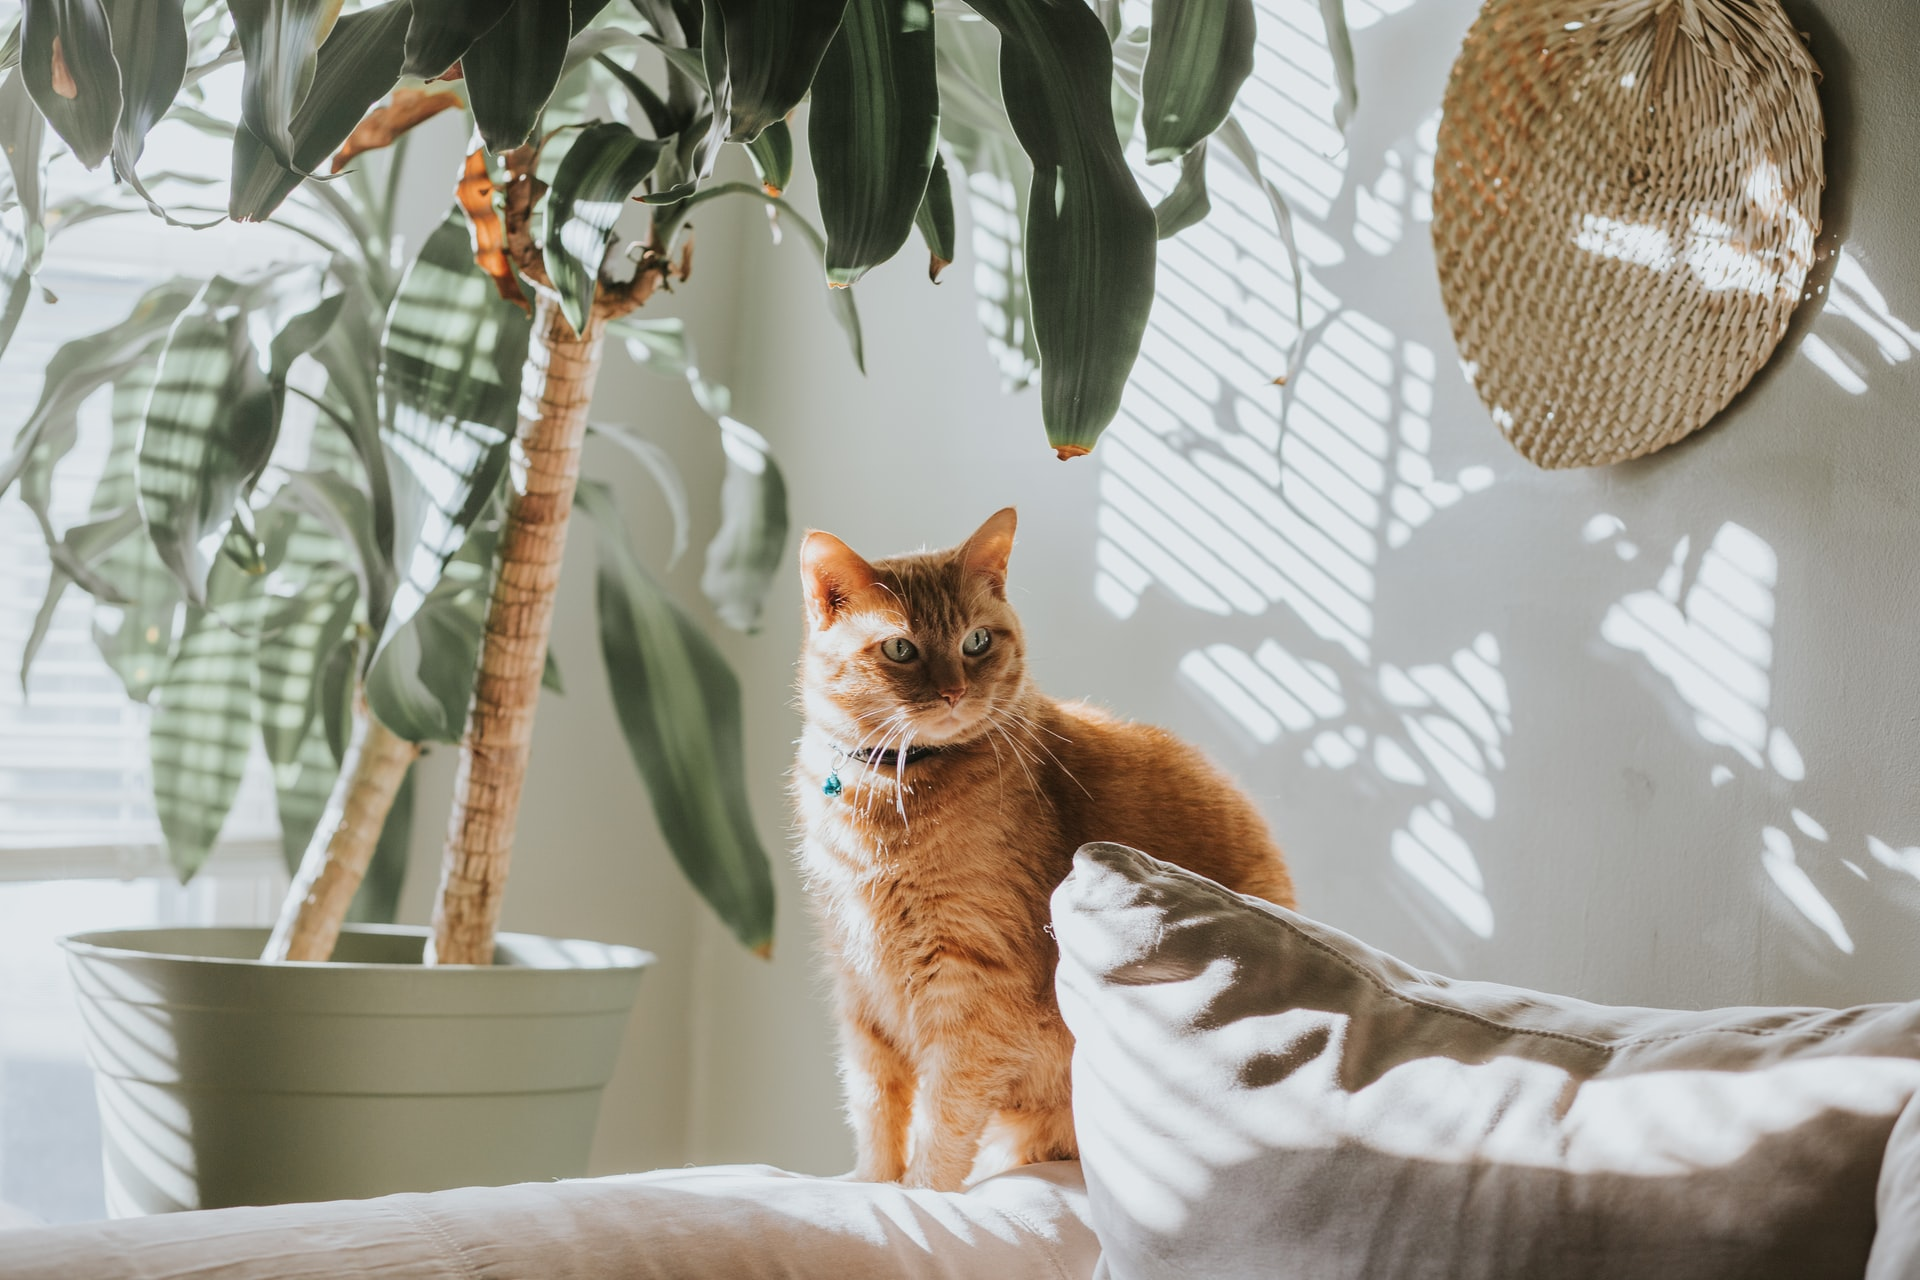 an orange cat sitting beside a houseplant in an apartment